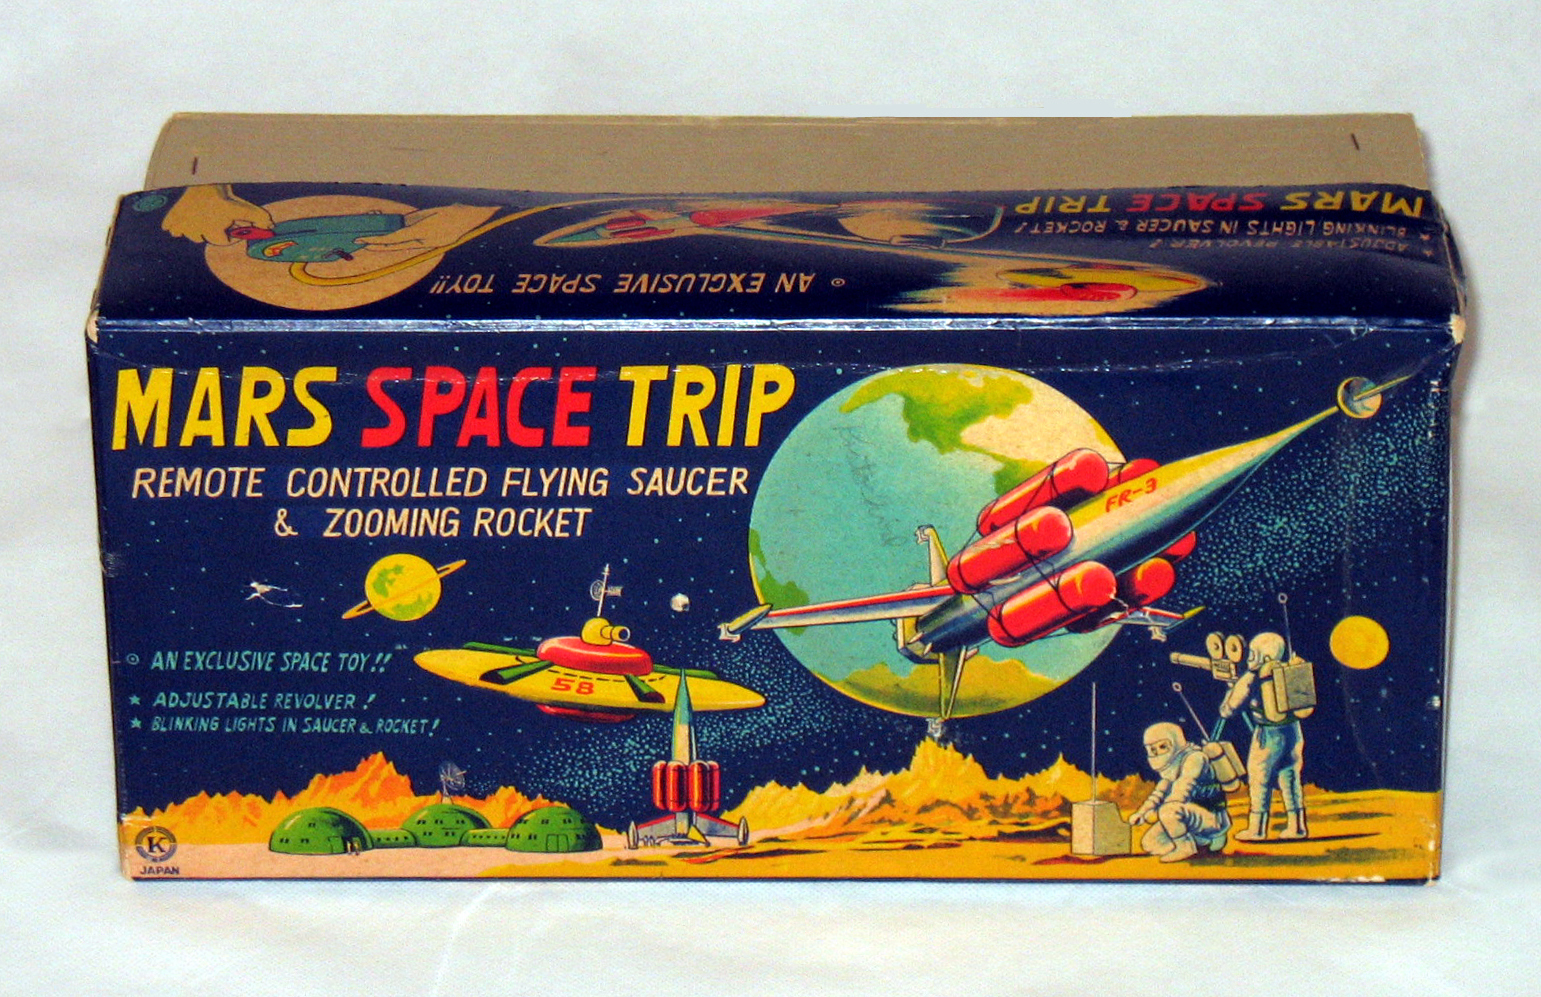 Vintage Space Toys : Free vintage space toys price guide information